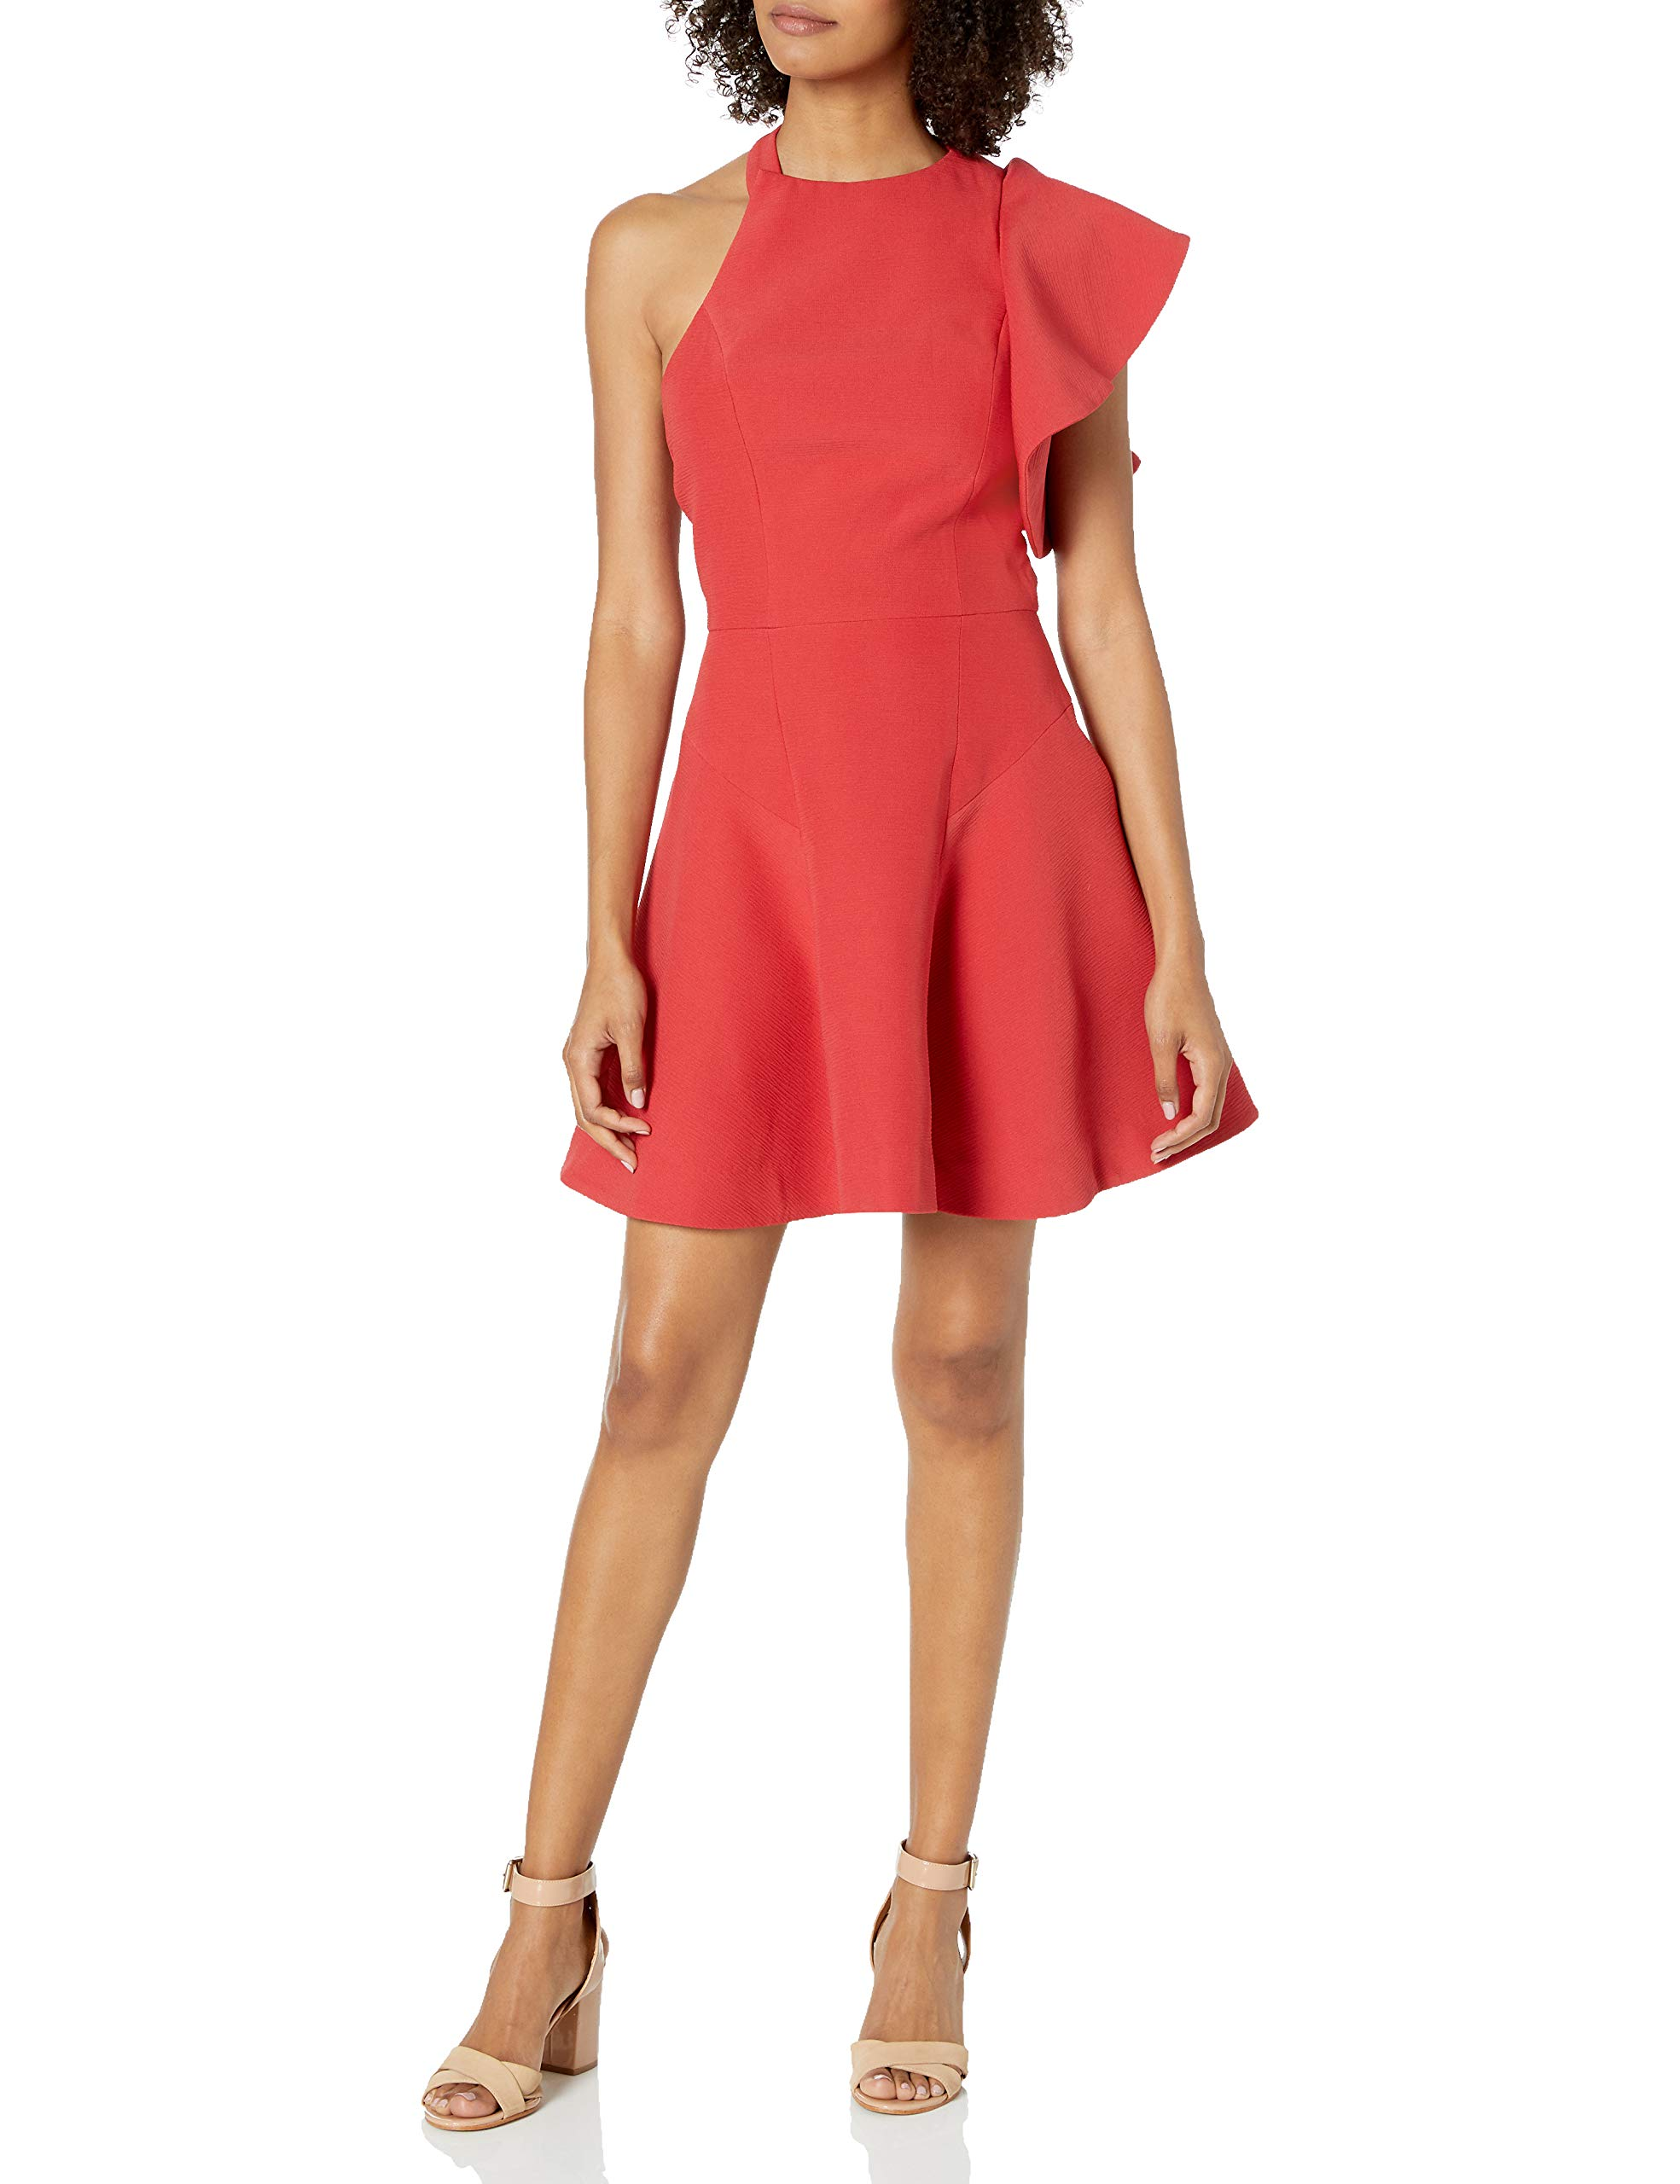 Available at Amazon: C/Meo Collective Women's Infinite Fit & Flare Ruffle Mini Party Dress